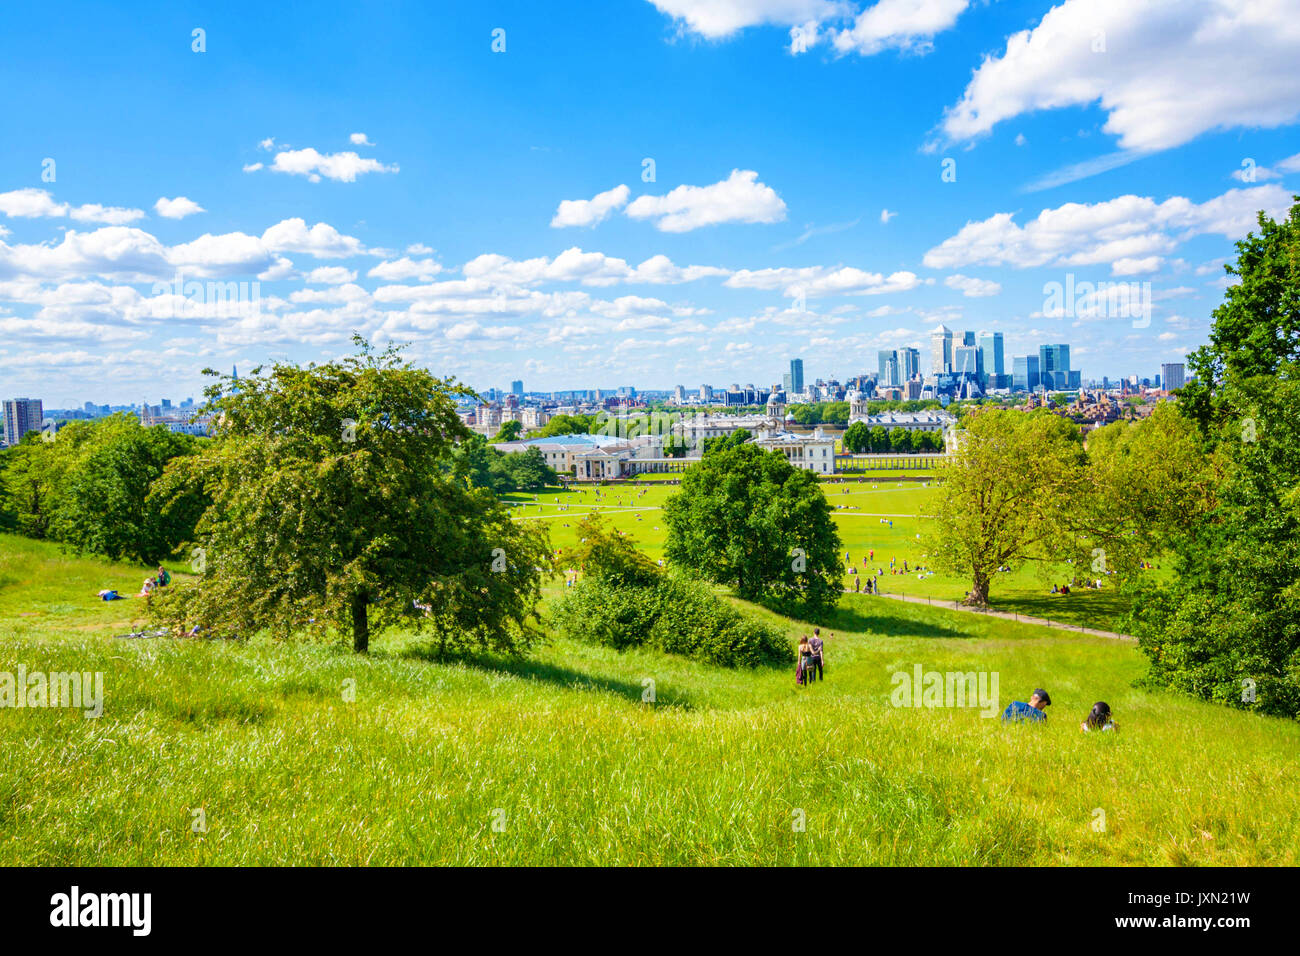 View of central London from Primrose Hill - Stock Image